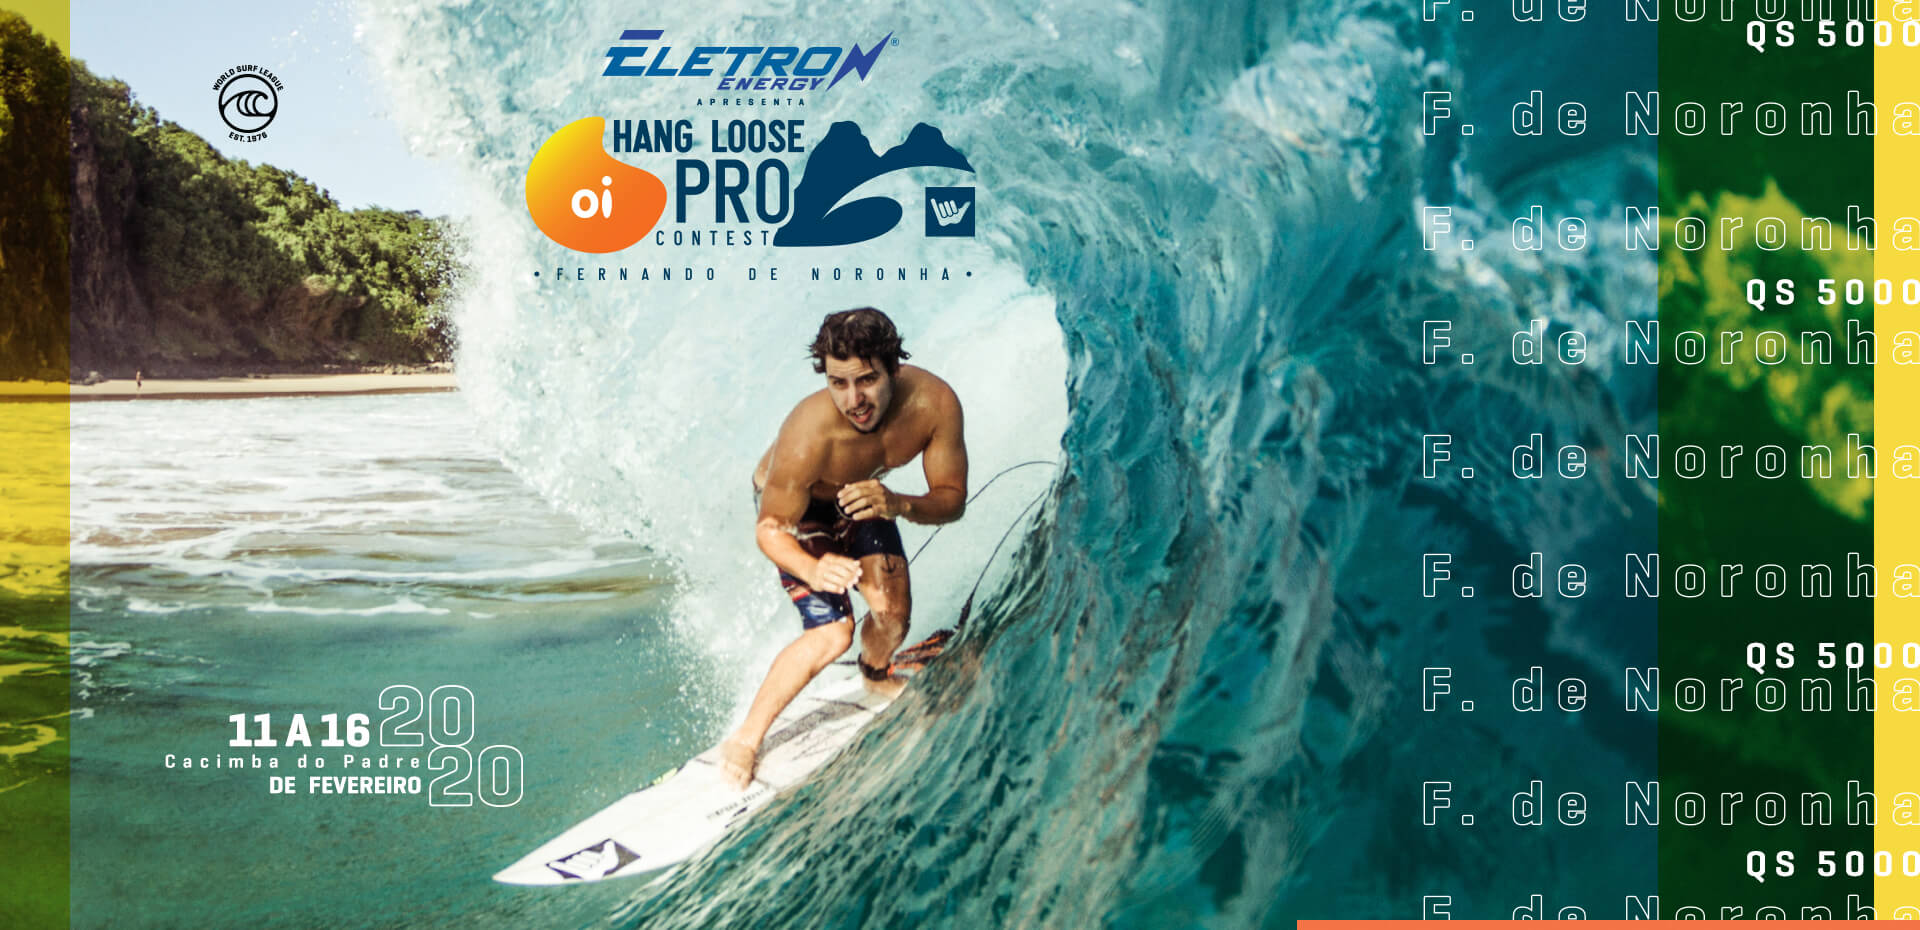 Hang Loose Pro Contest